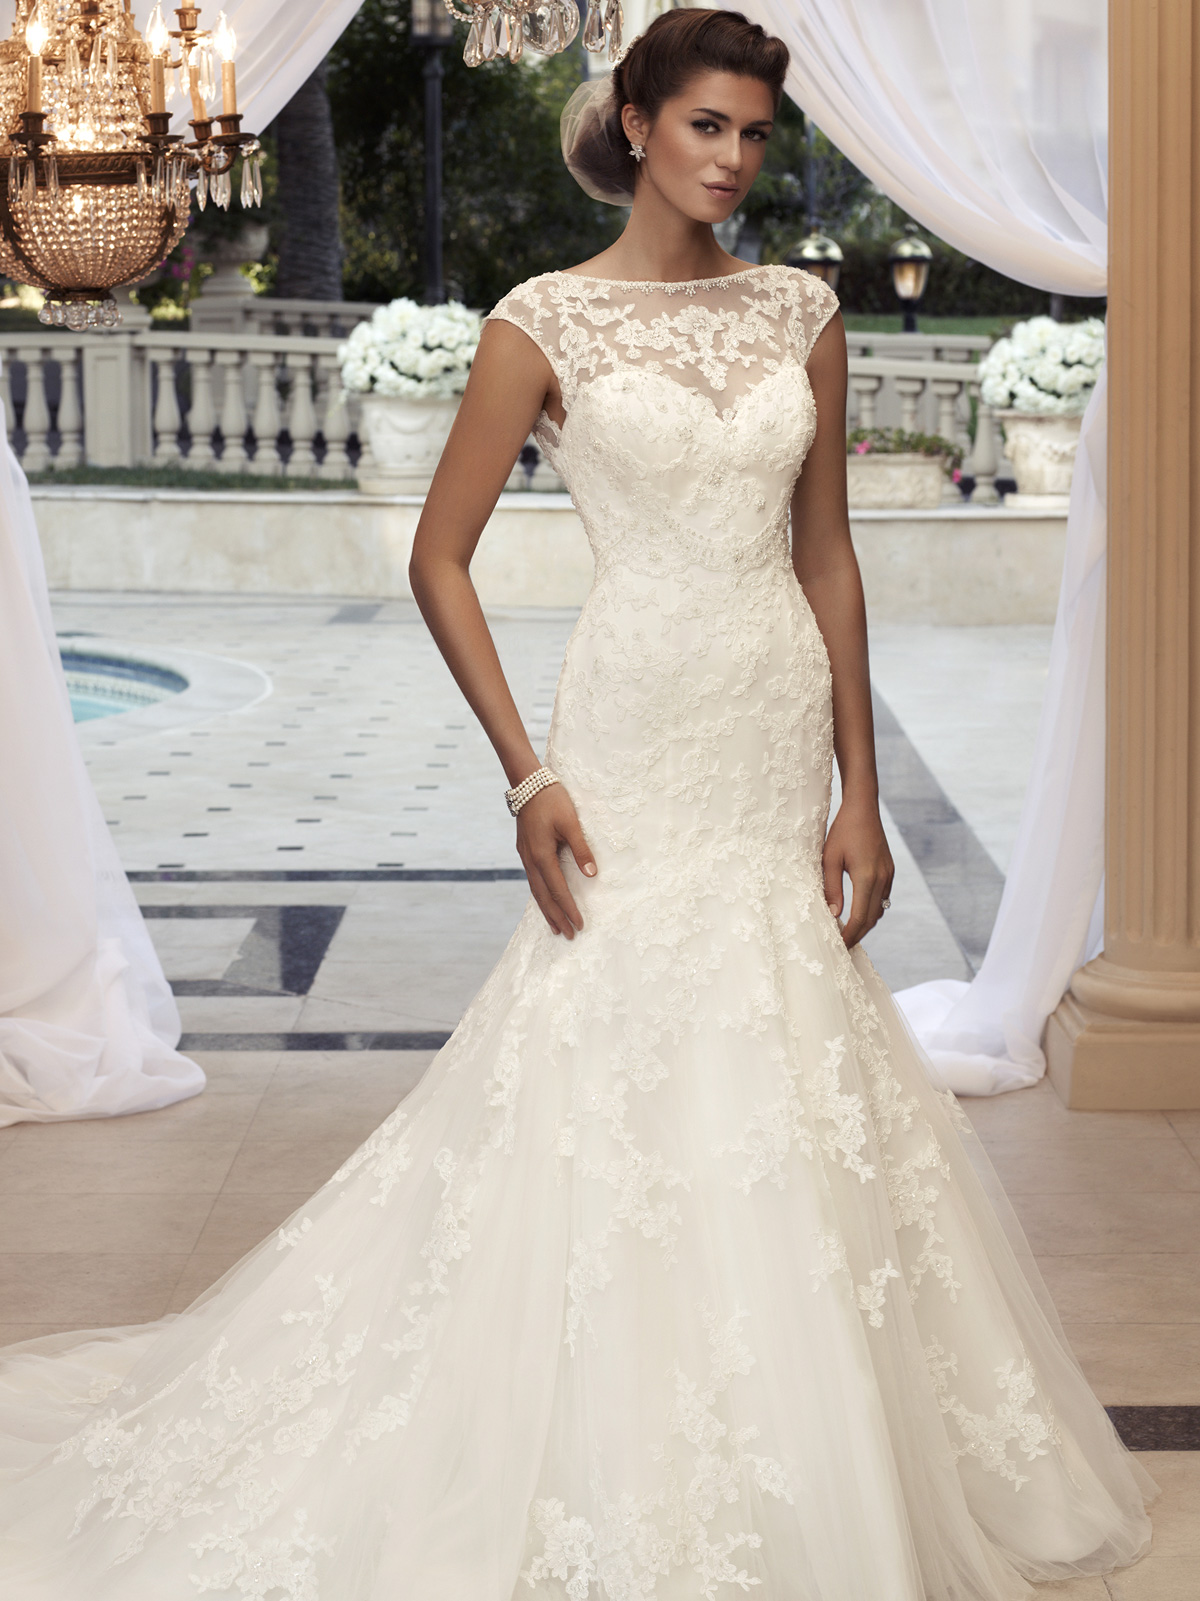 Cap Sleeve Fit And Flare Casablanca Bridal Gown 2110|DimitraDesigns.com